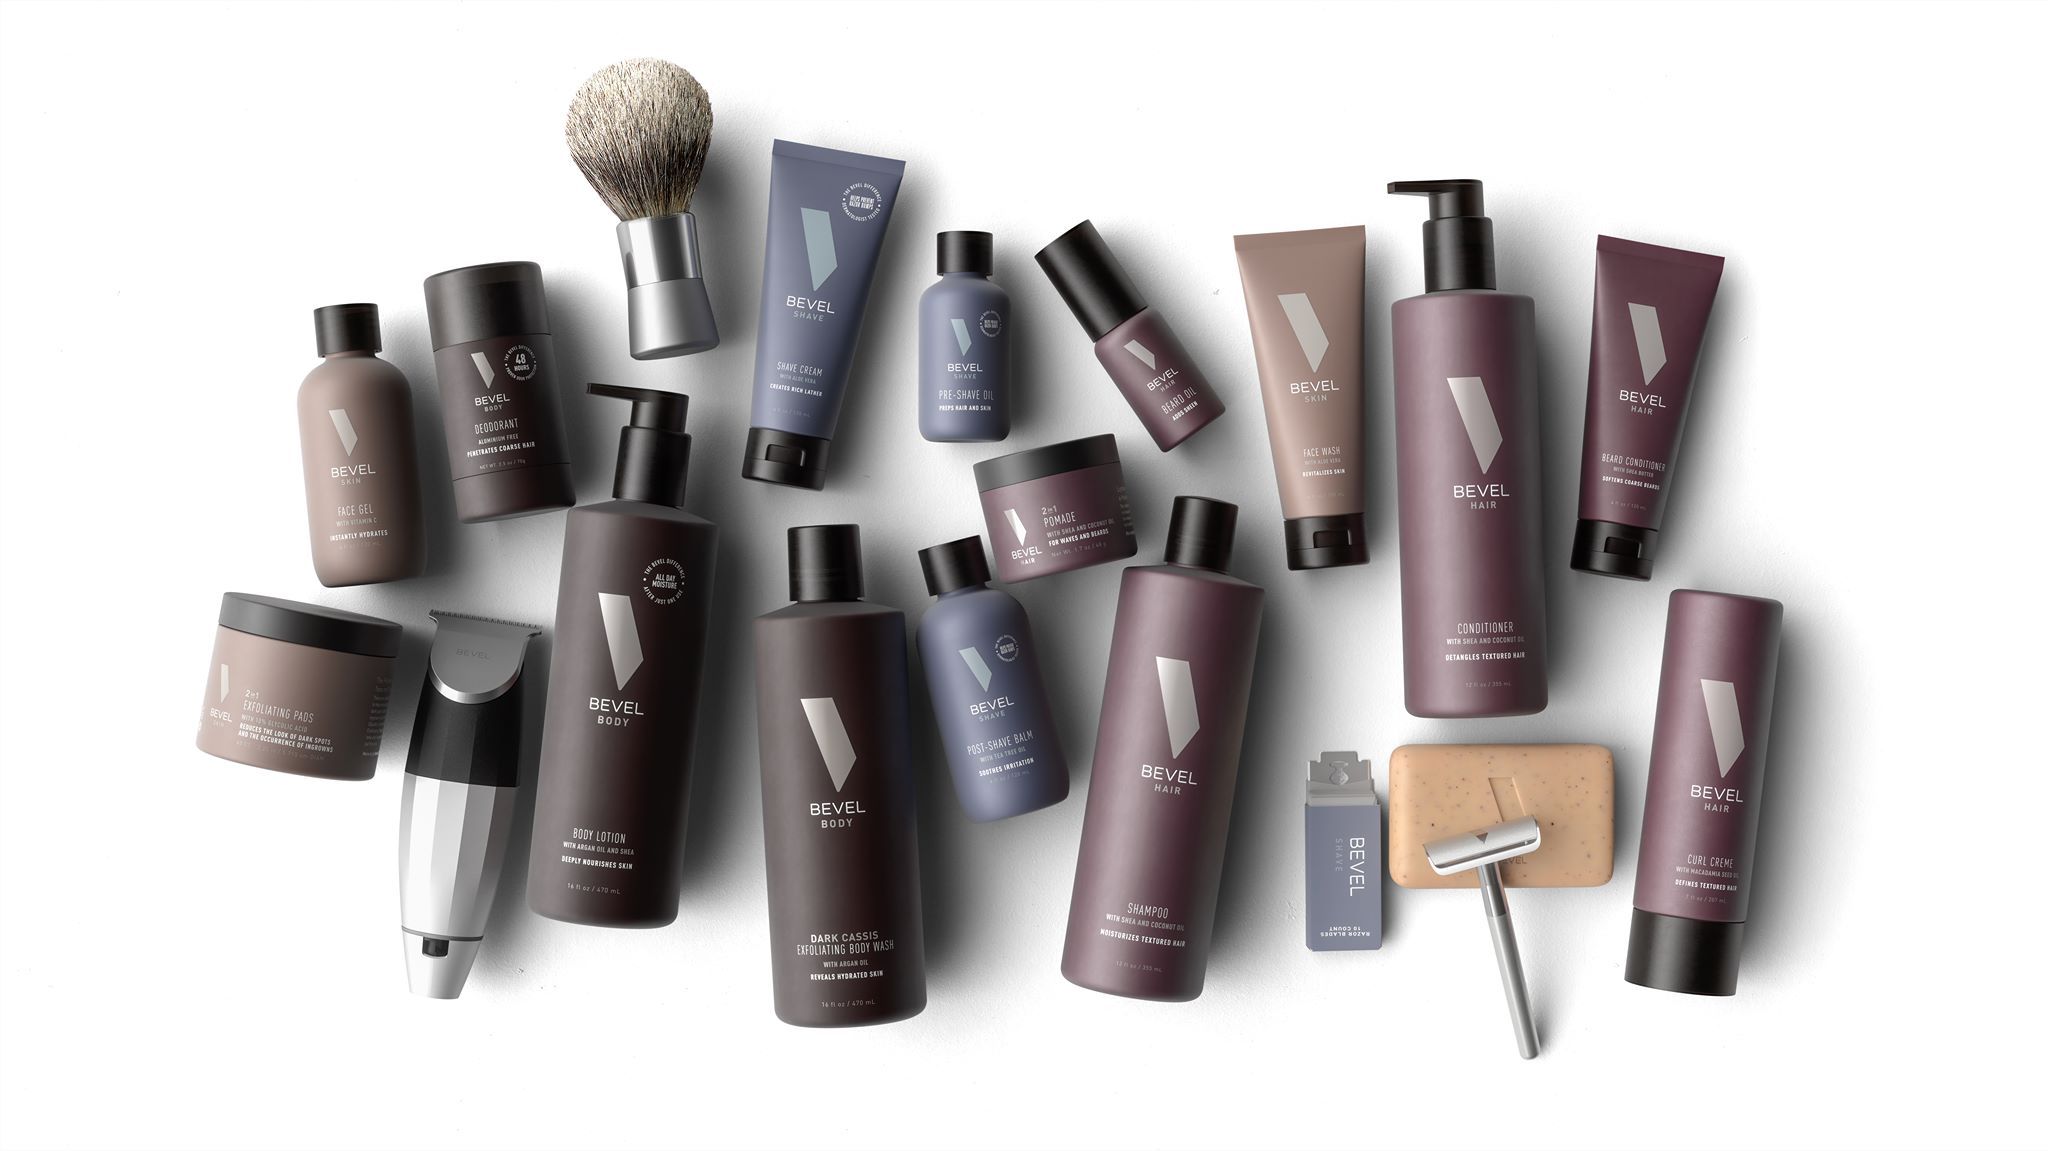 Bevel – Shaving and Grooming products